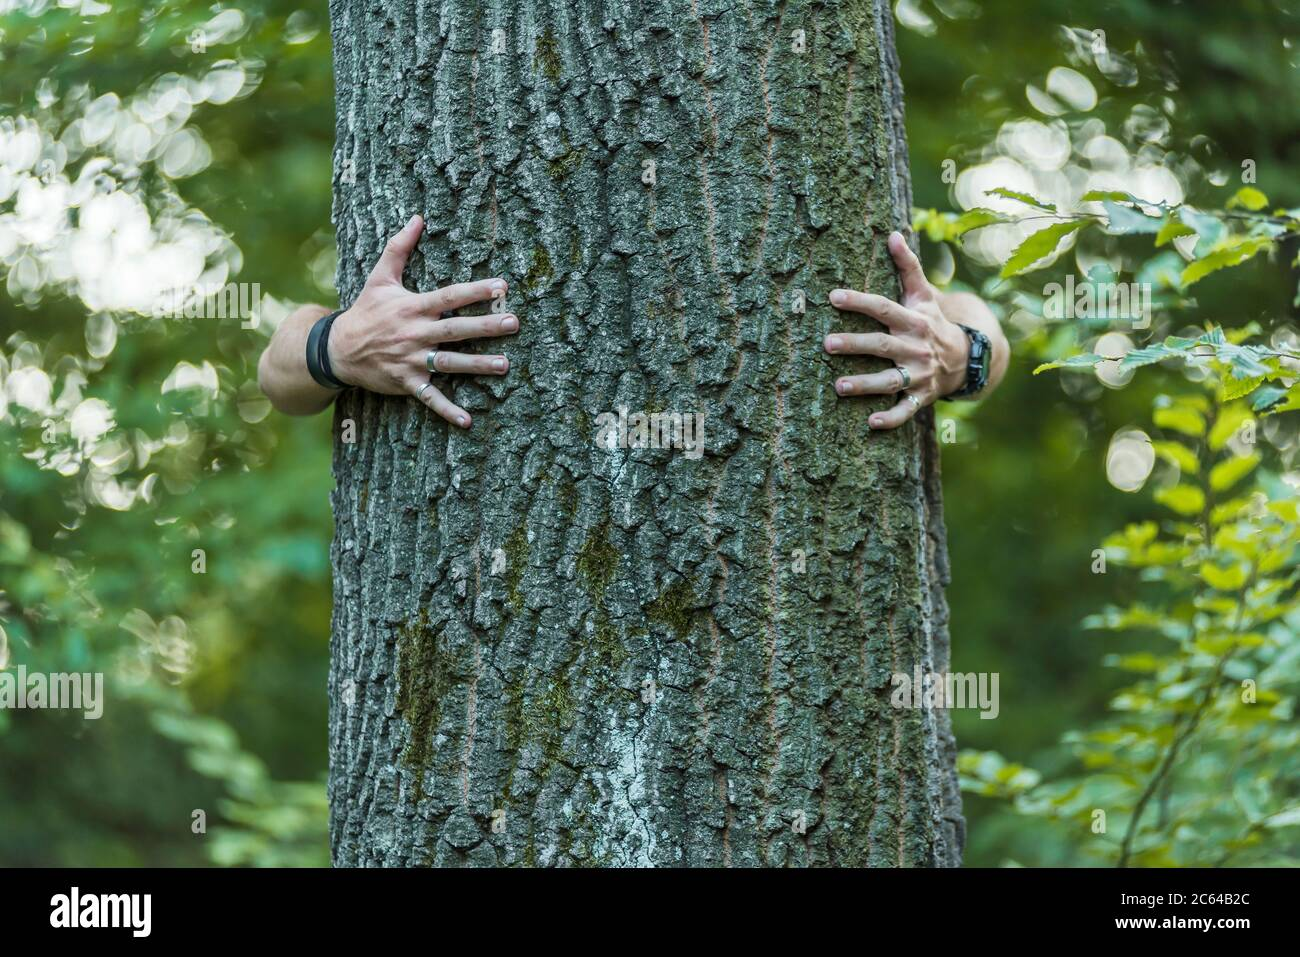 male hands hug a tree in the woods Stock Photo